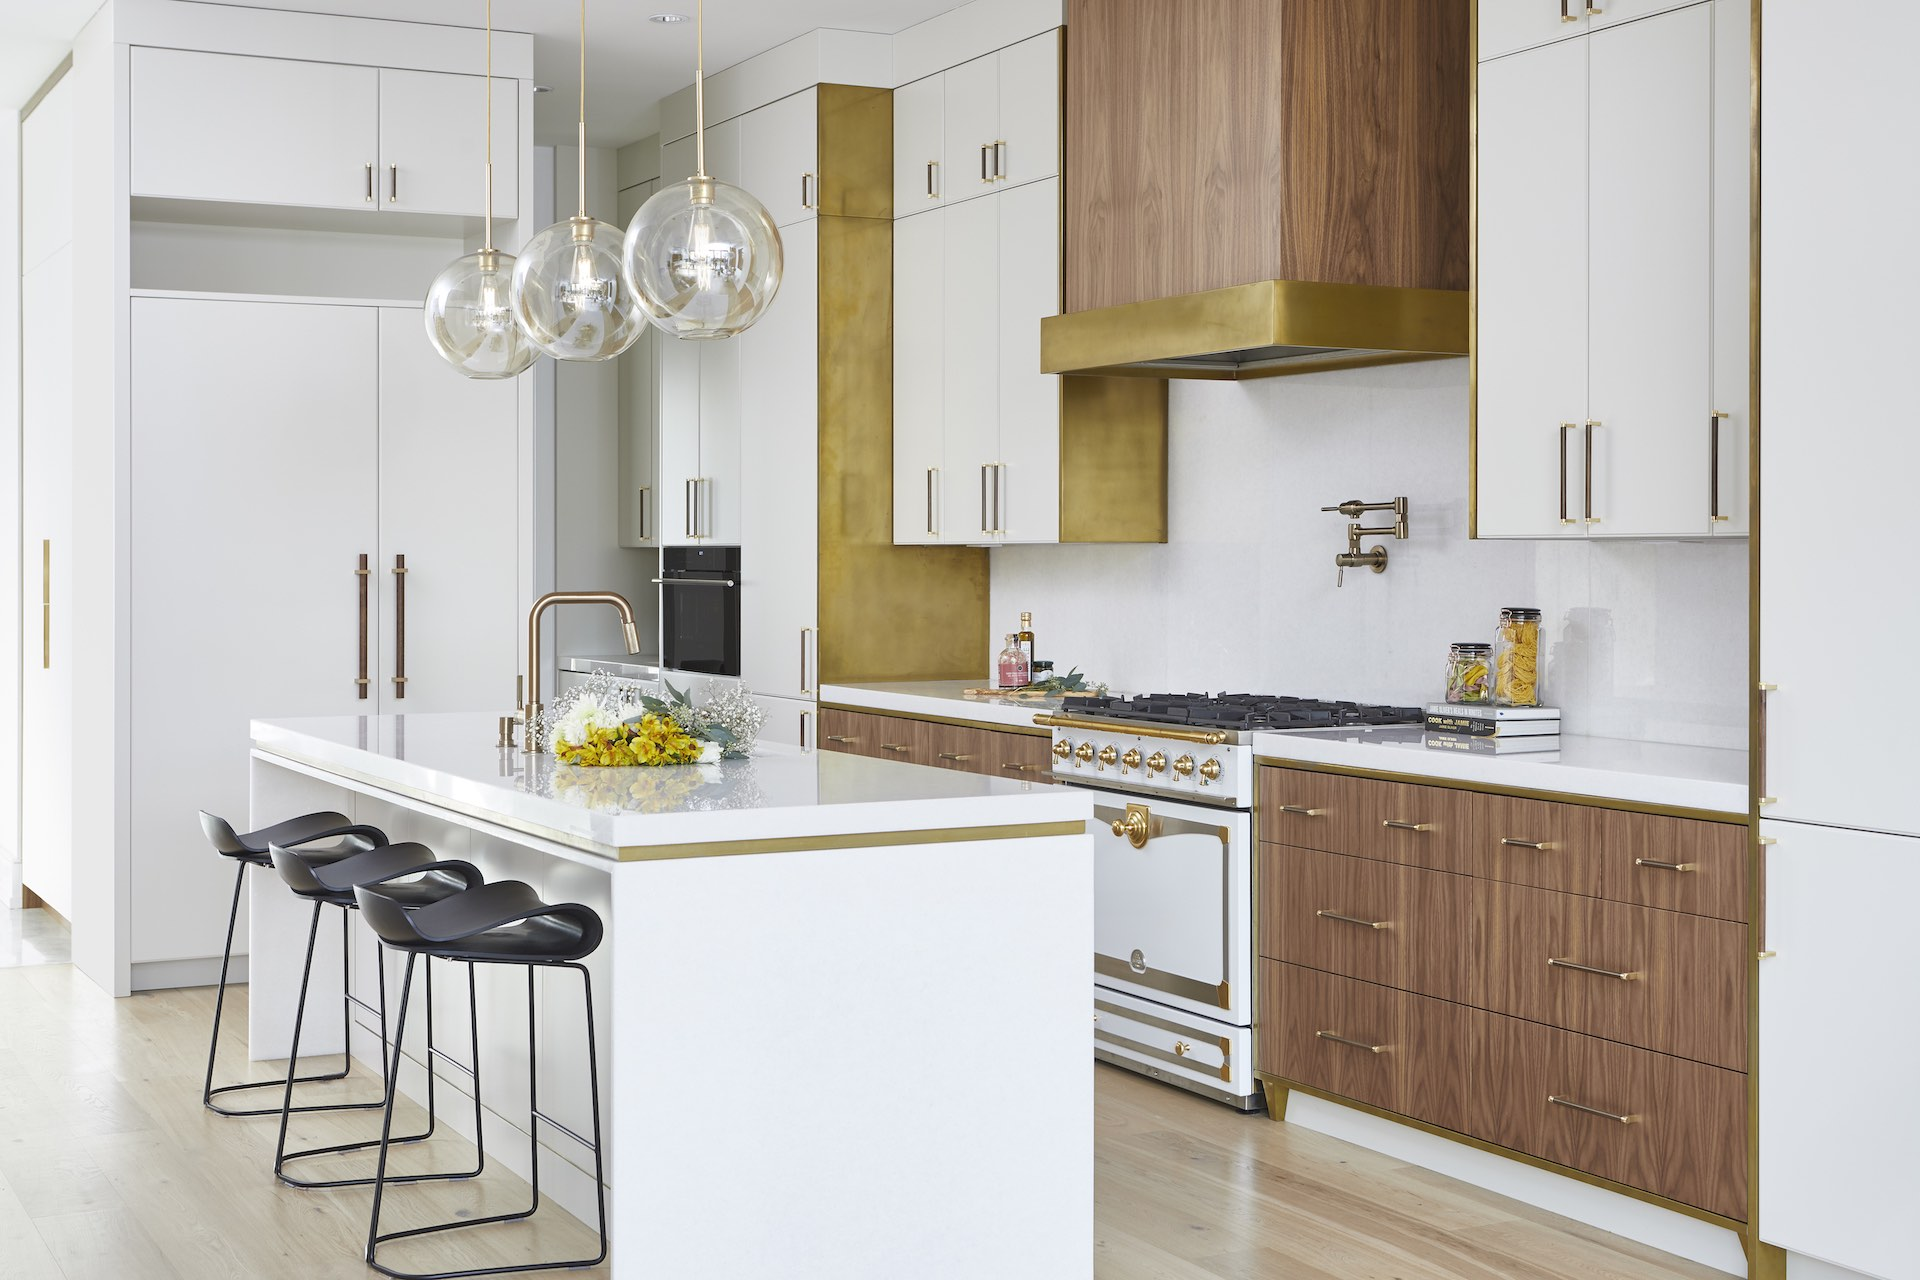 Natural wood and white kitchen